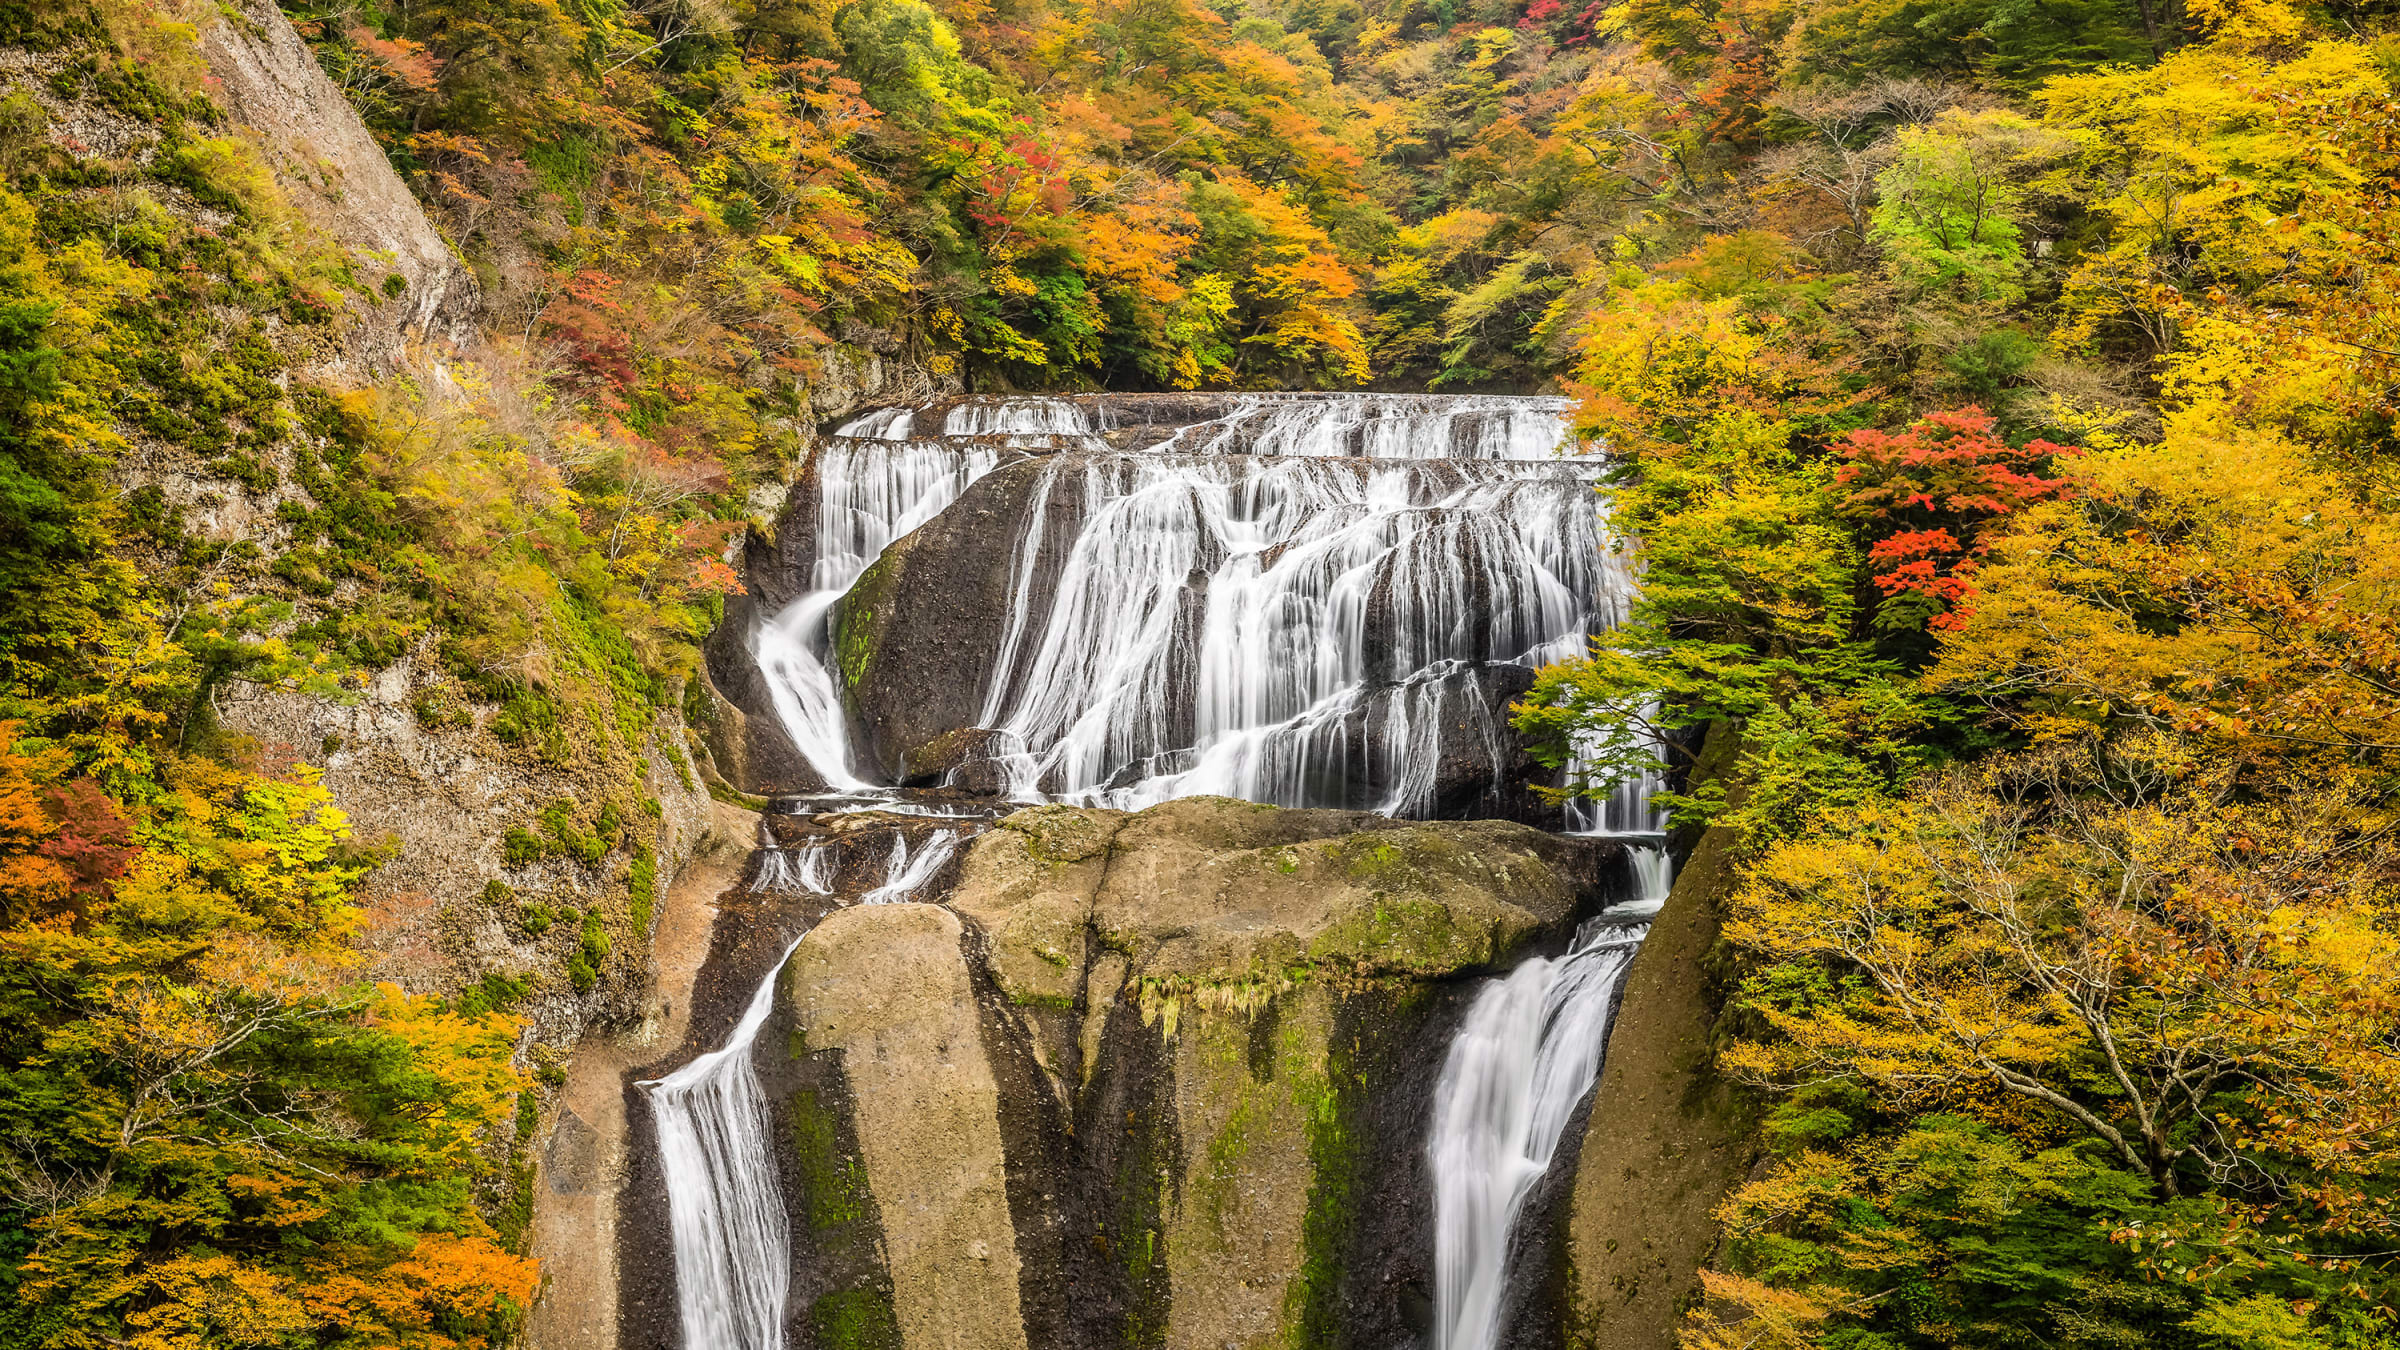 Daigo-Town, an Off-the-Beaten Path Town Perfect for Your Japan Trip